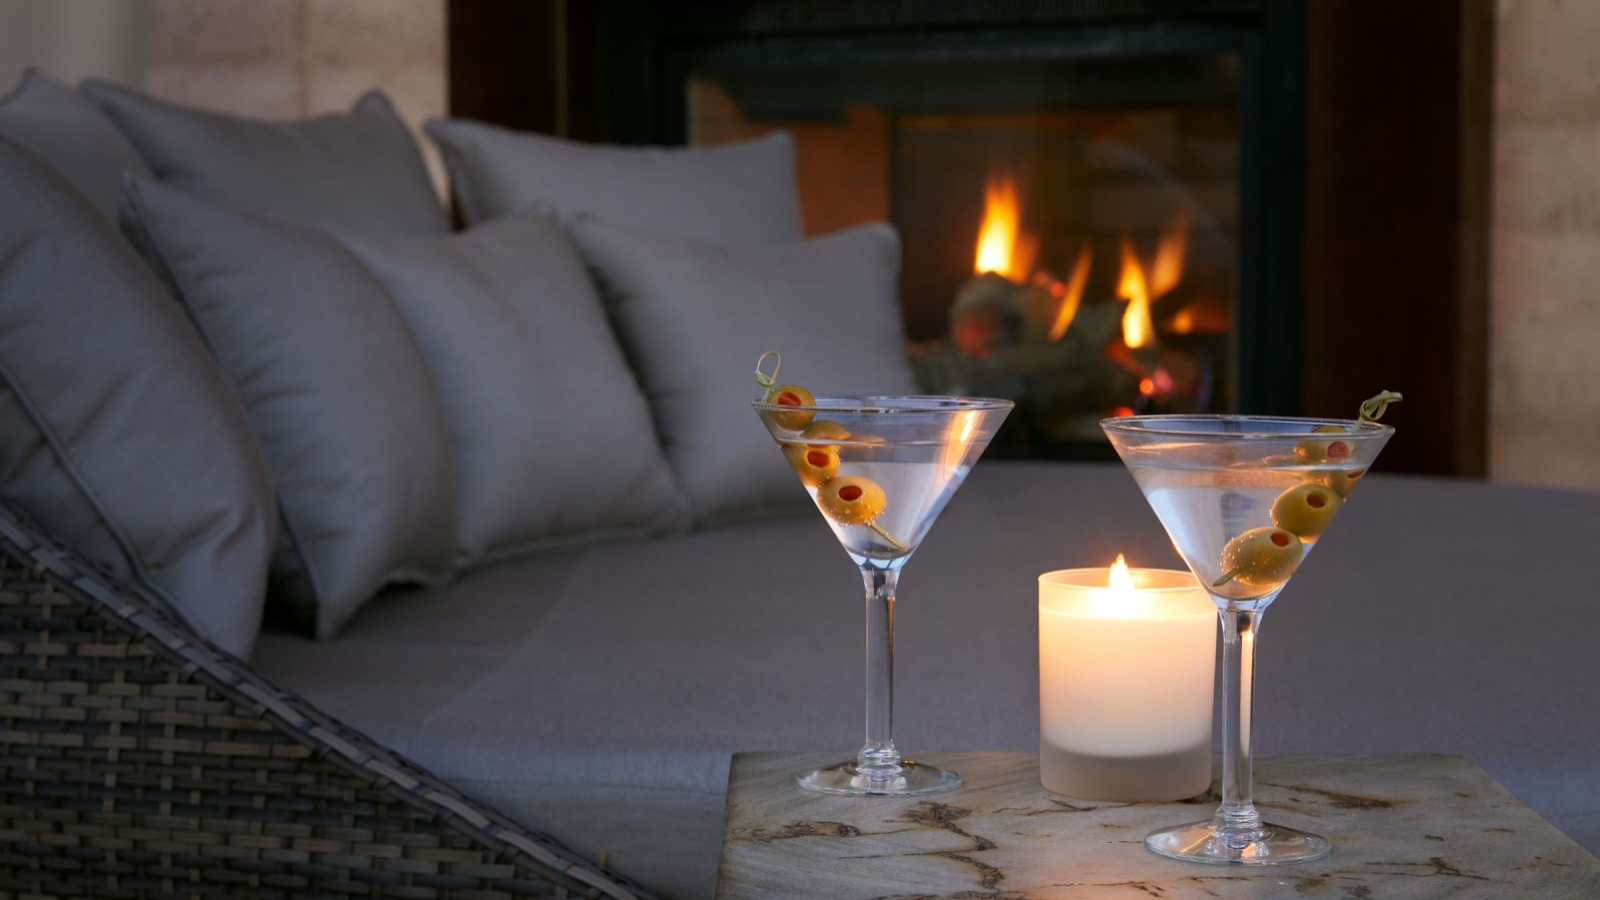 two martini glasses set next to a candle